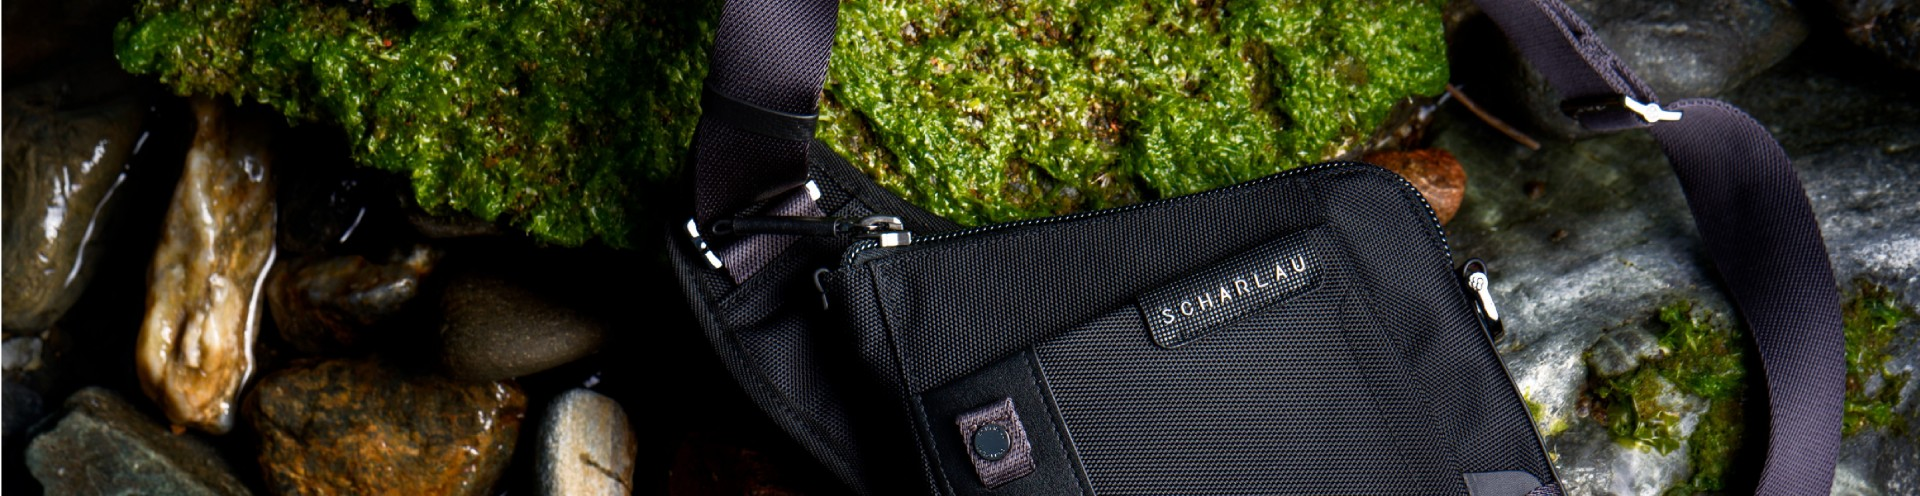 Exclusive Customizable Leather Crossbody Bags